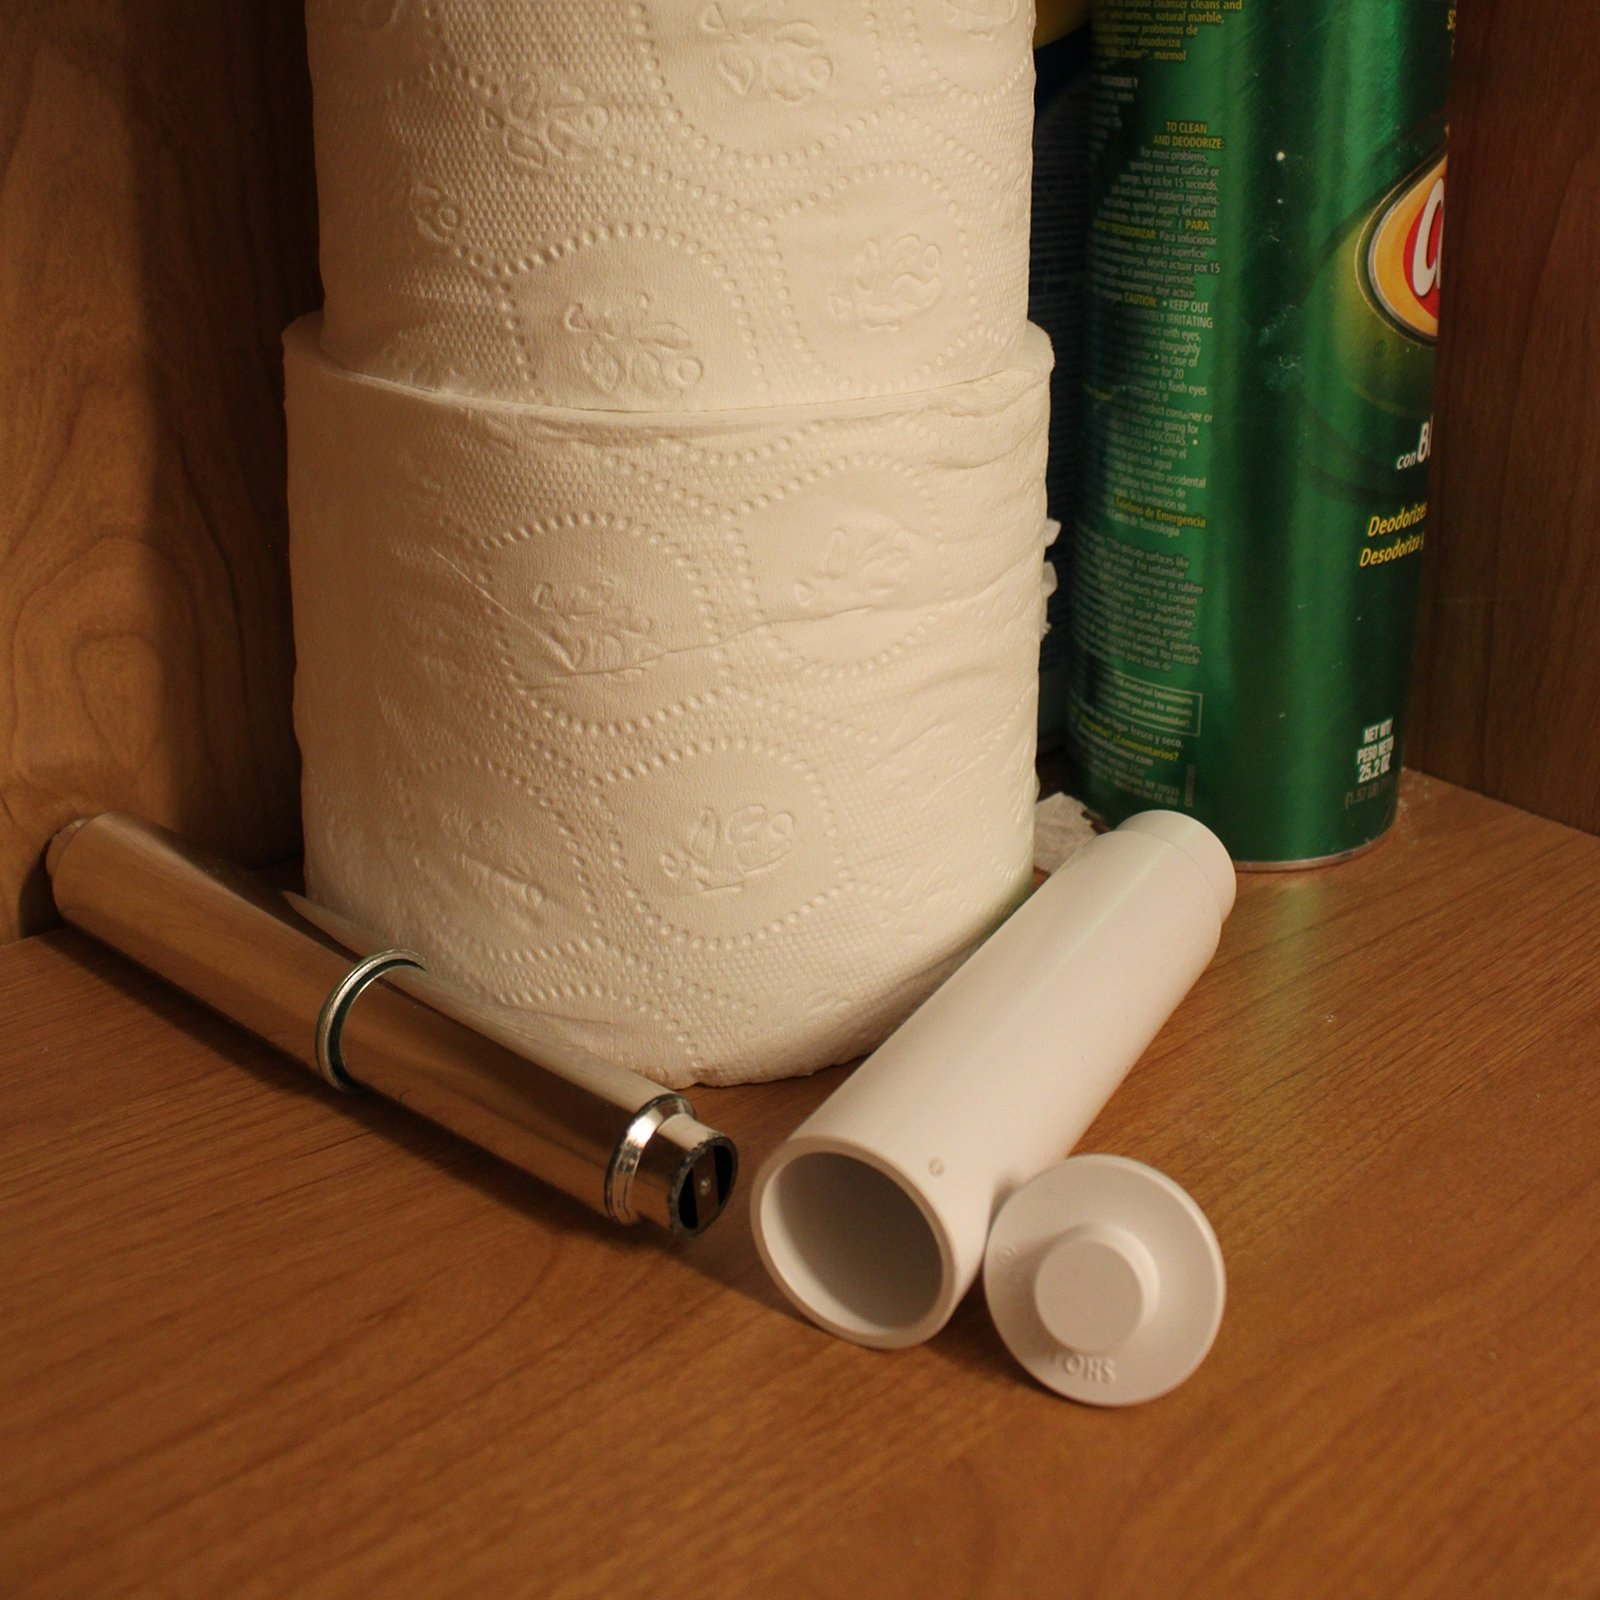 Hidden Contents Hollow Toilet Paper Roll Diversion Safe Property Security Device